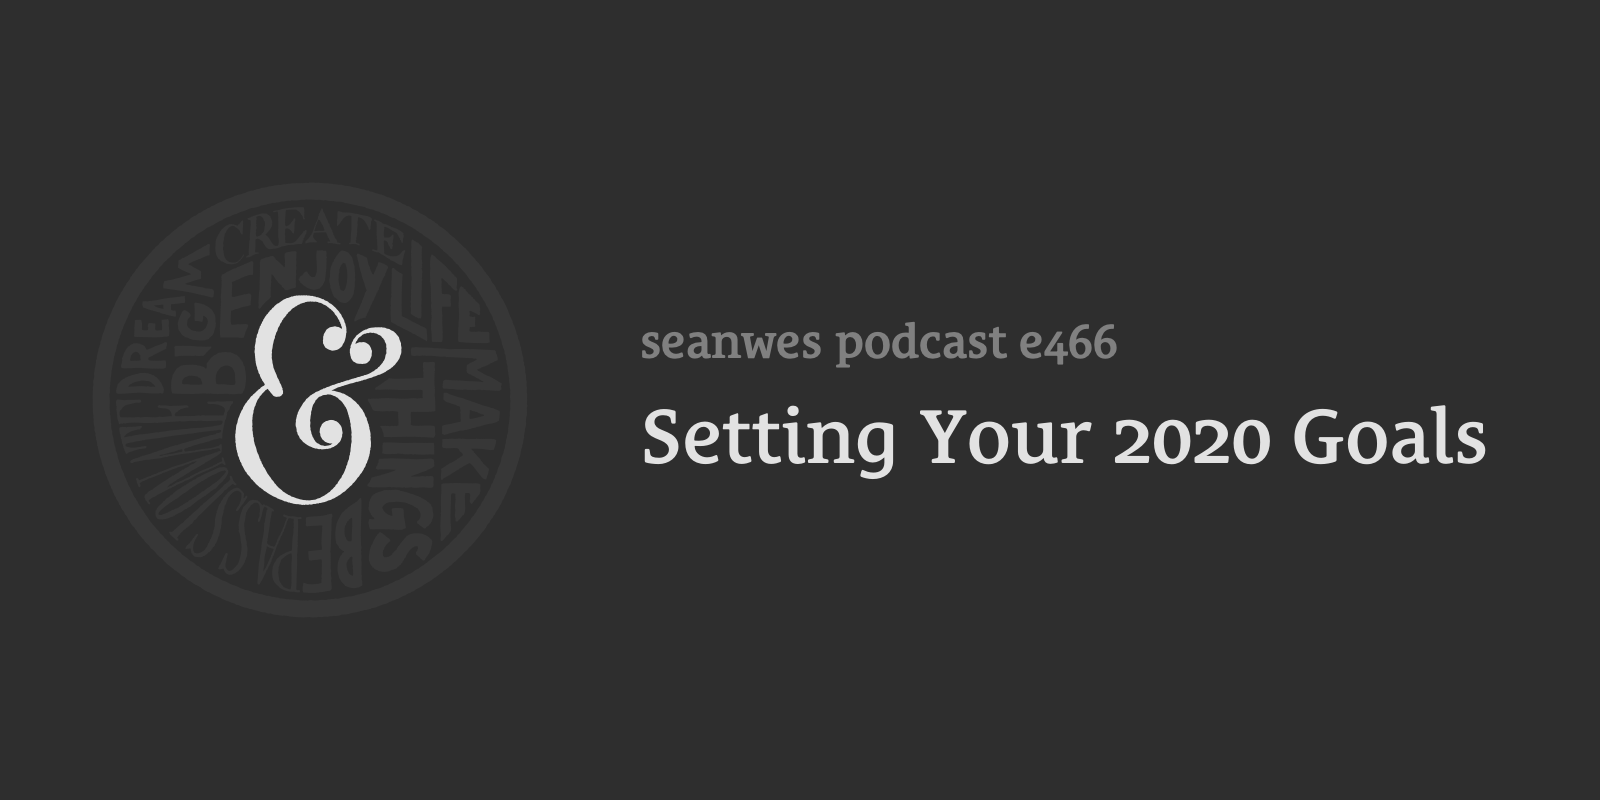 seanwes podcast: Setting Your 2020 Goals